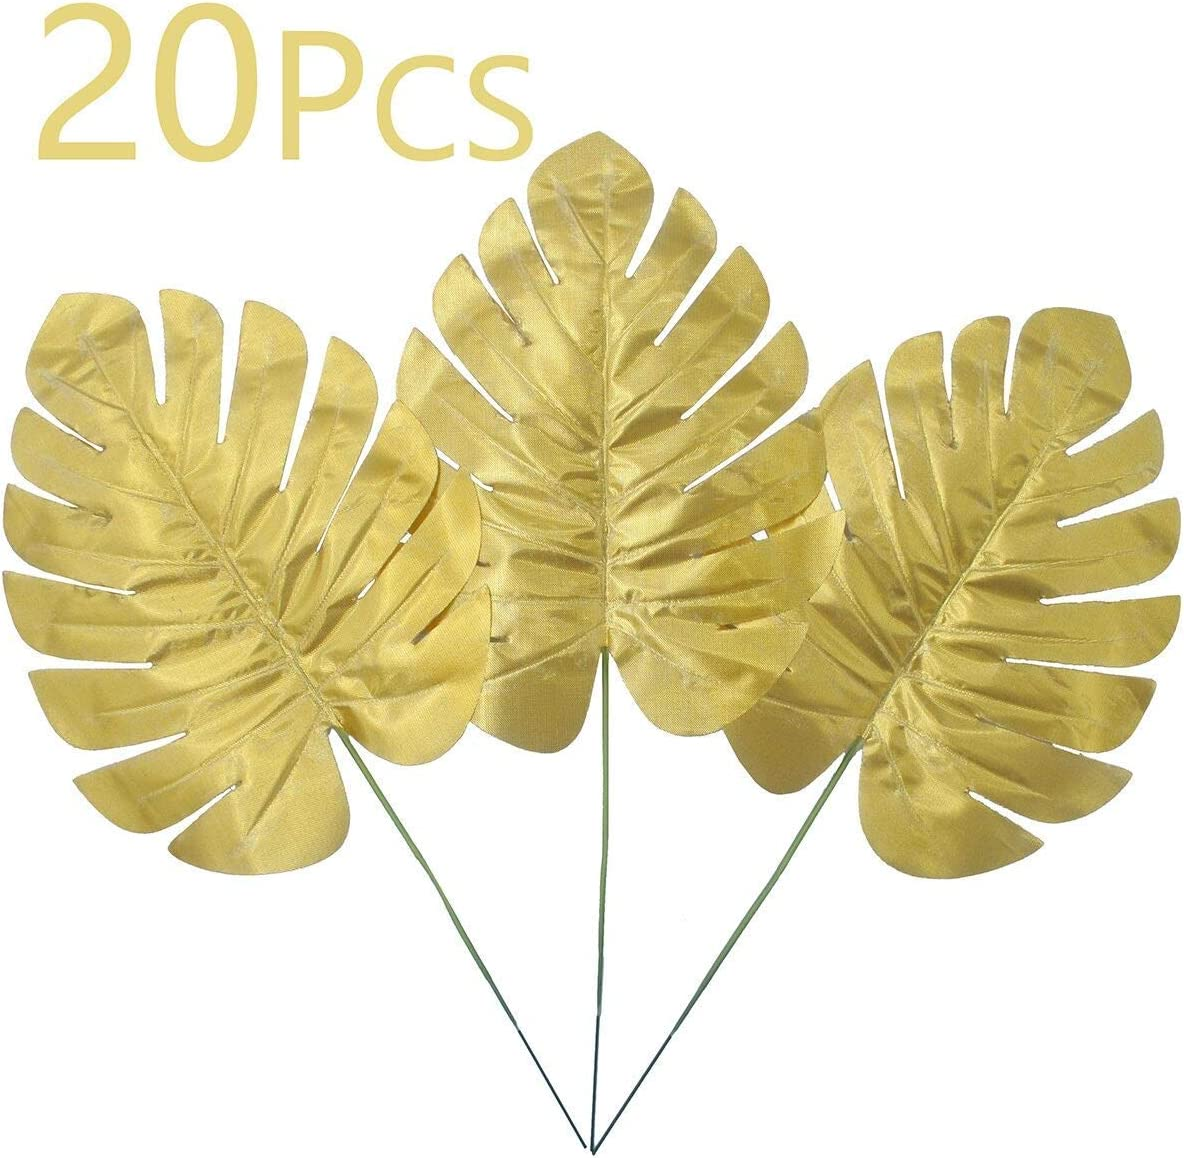 Warmter 20 Pcs Artificial Palm Artificial Plants Tropical Leaves Eucalyptus Branches for Home Wedding Birthday Havana Nights Party Decorations (Gold)